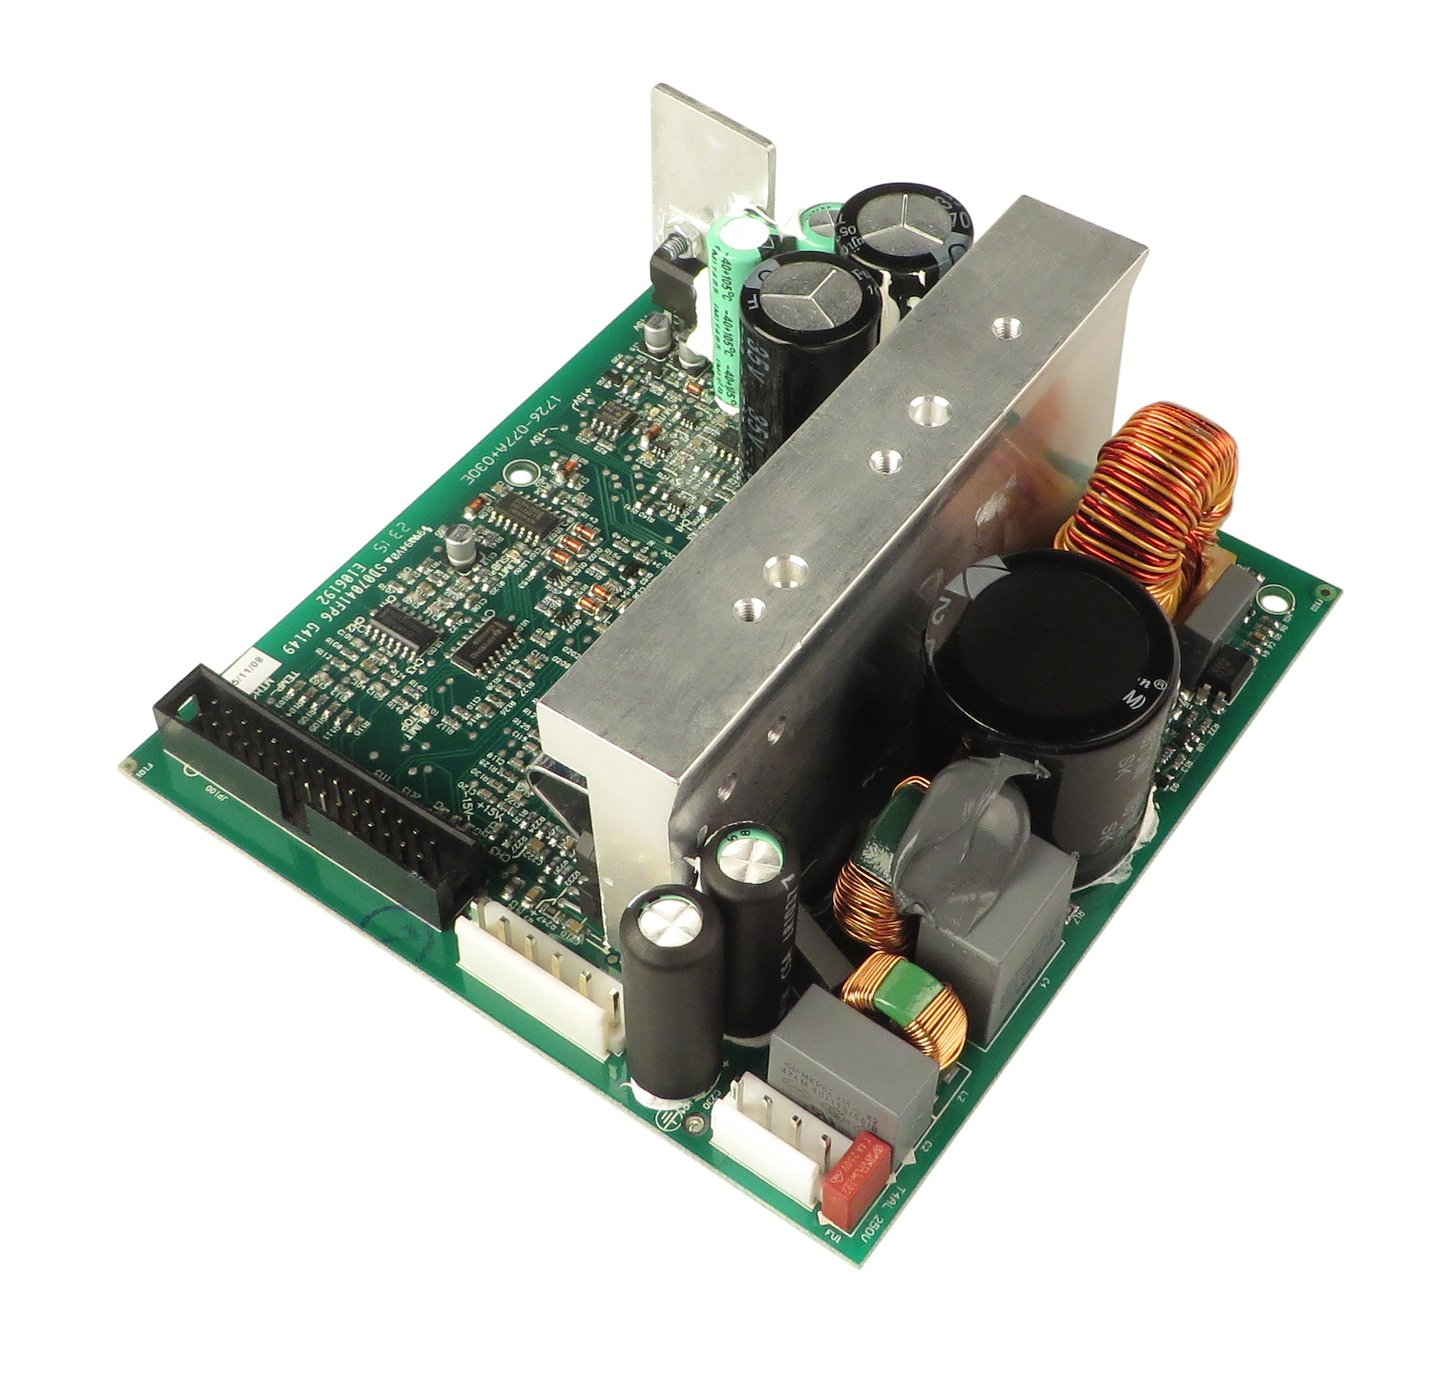 Power Amp Module for Lucas Nano 300